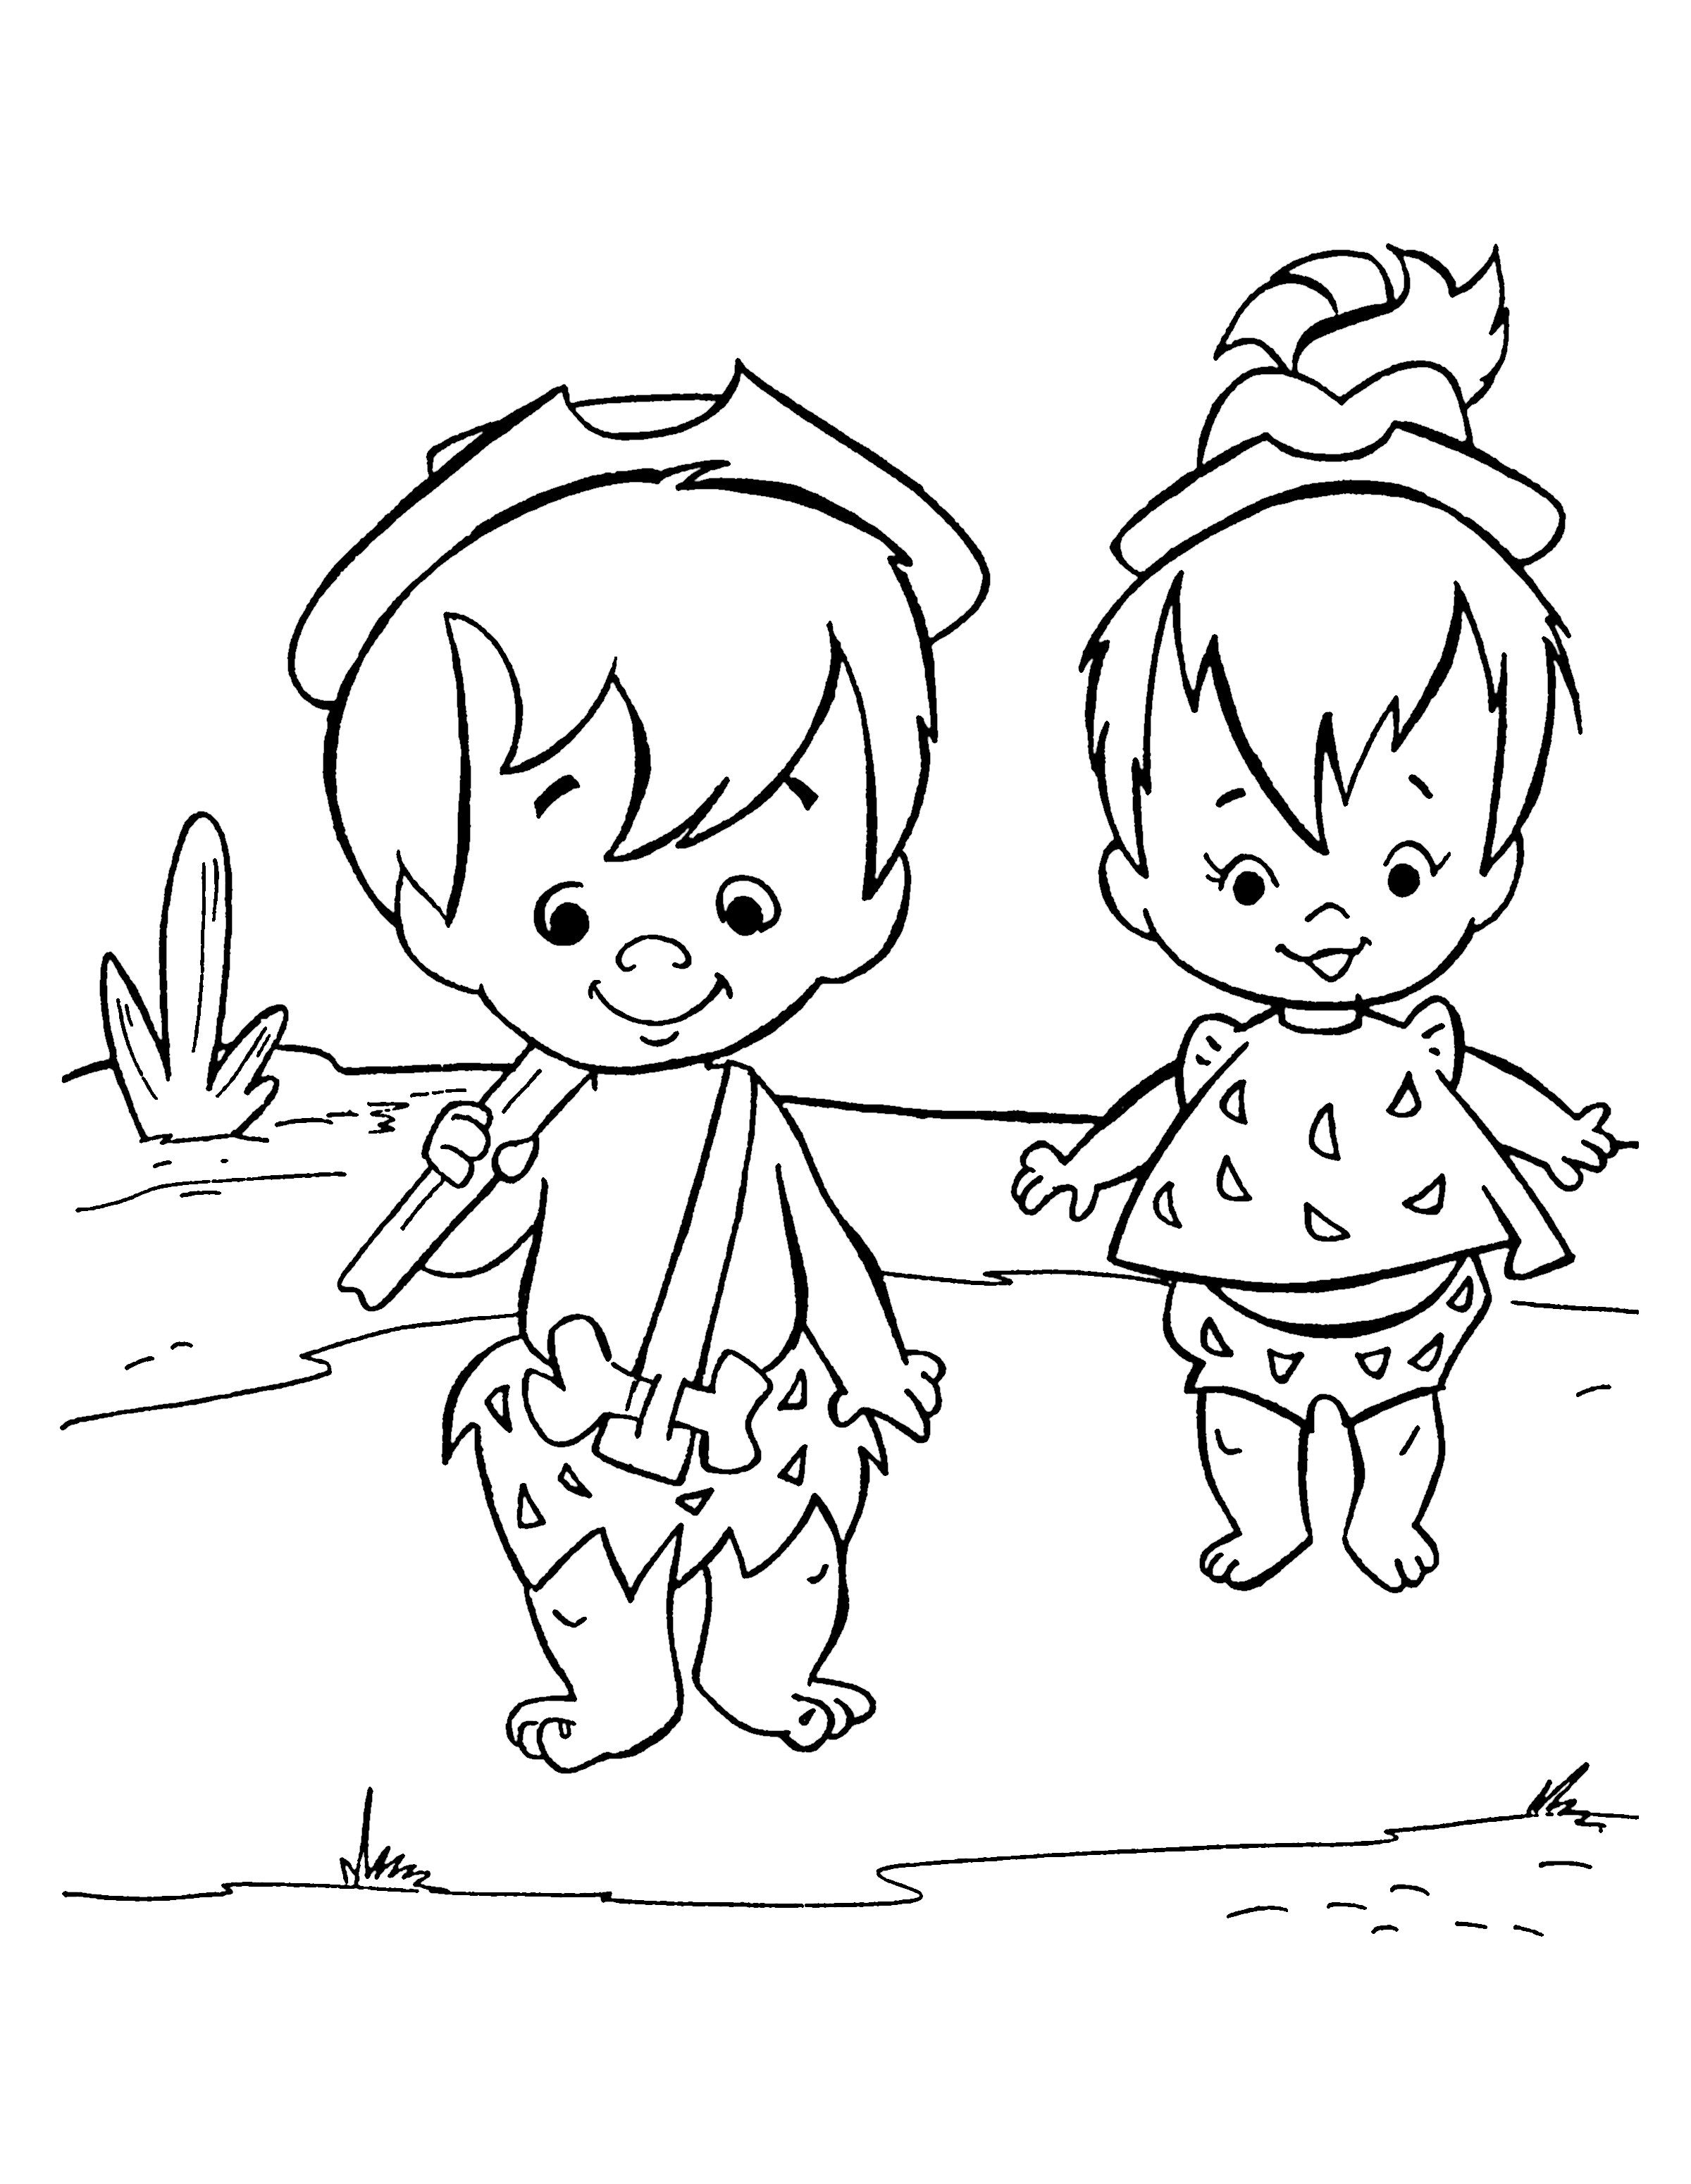 The Flintstones Coloring Pages 32 | Coloring pages for kids ...